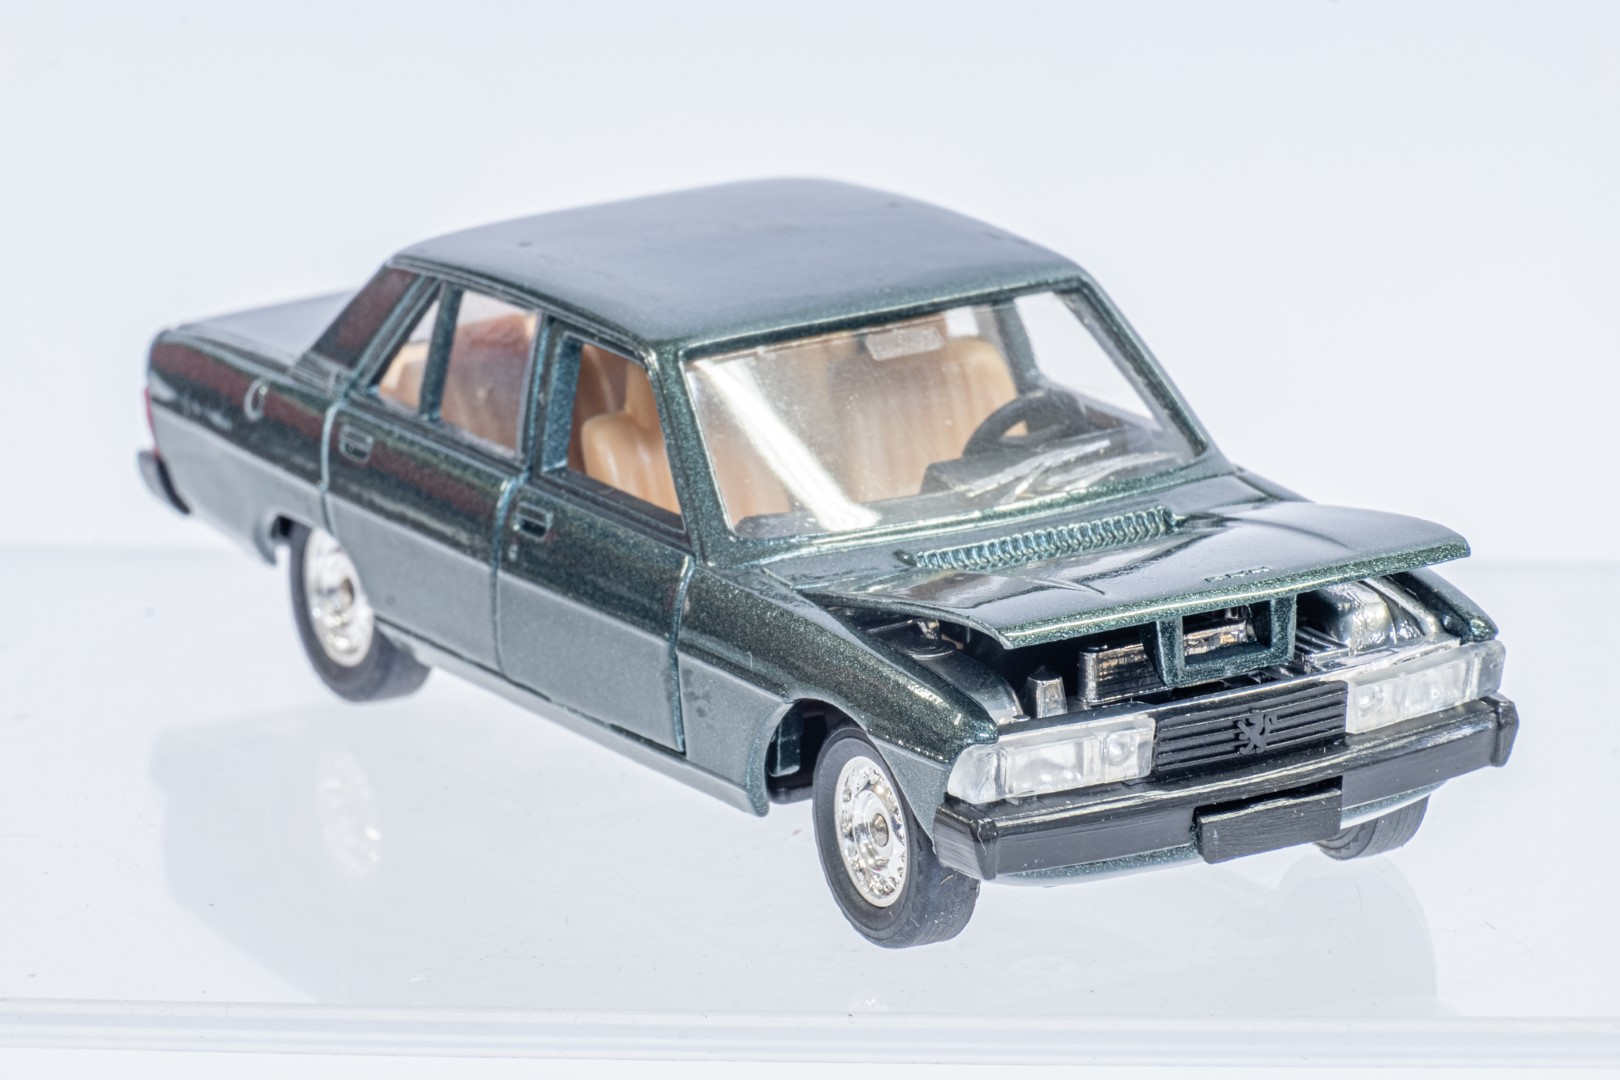 Solido 40 Peugeot 604 - Image 8 of 8